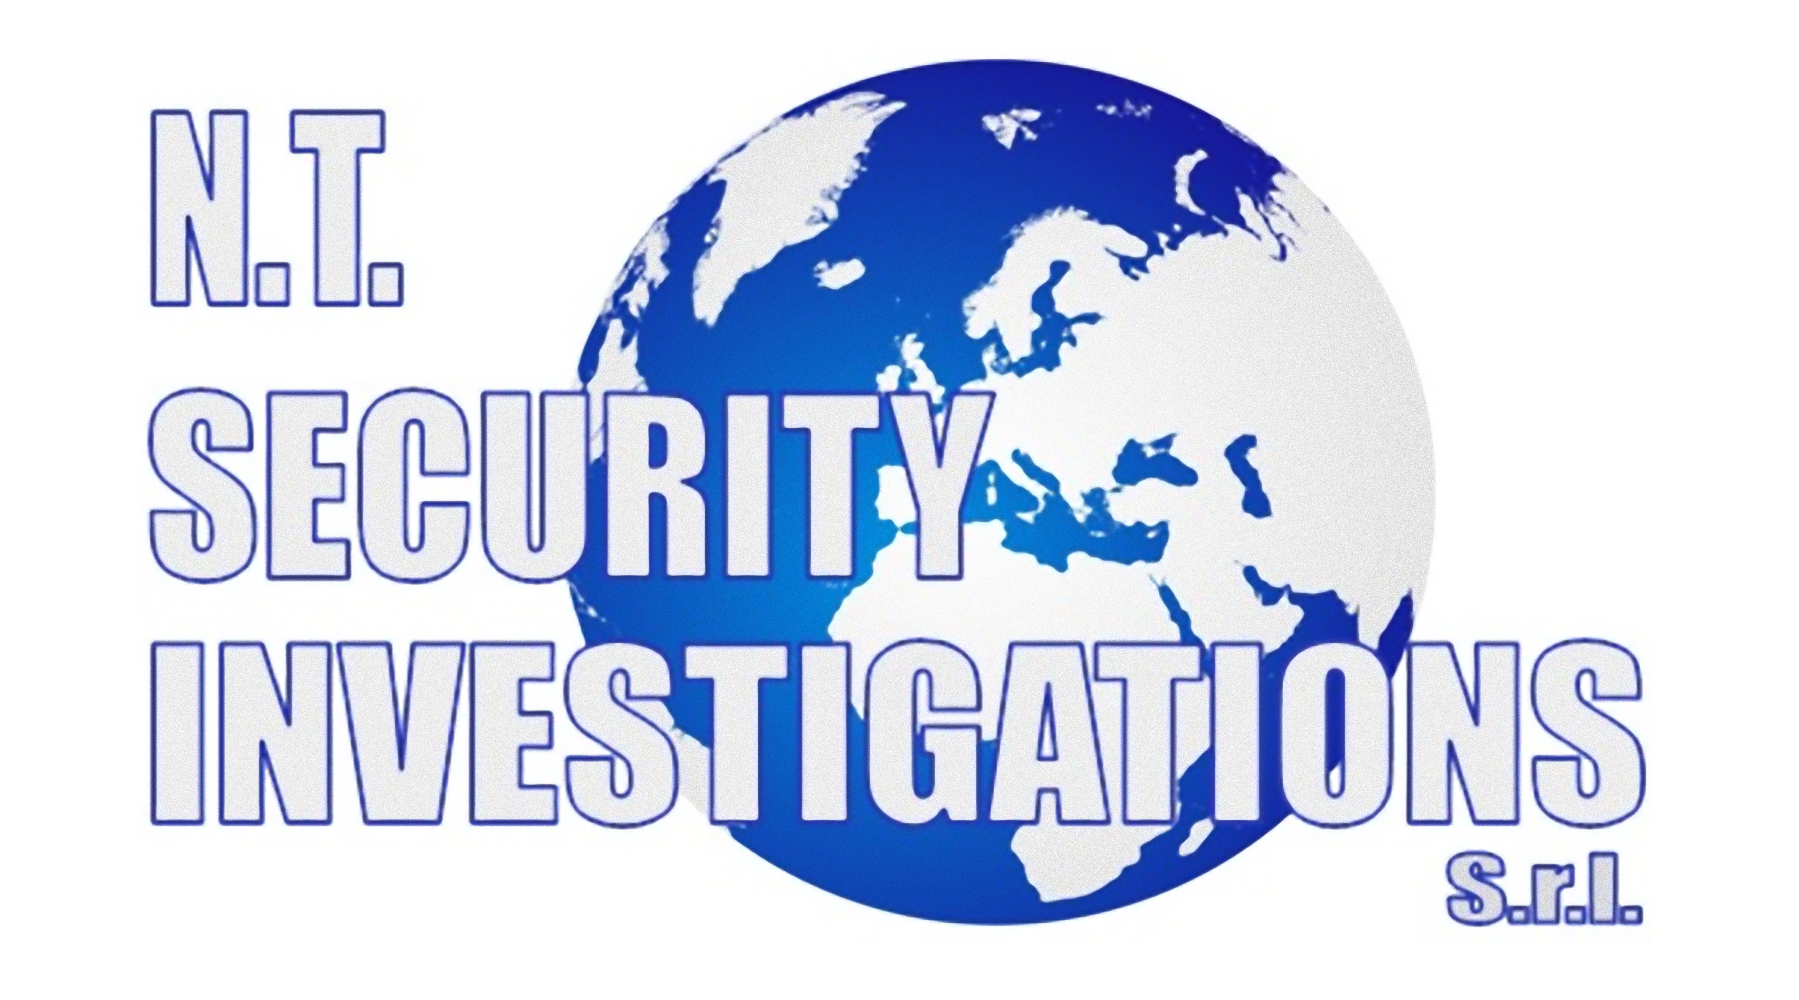 N.T security investigations srl logo